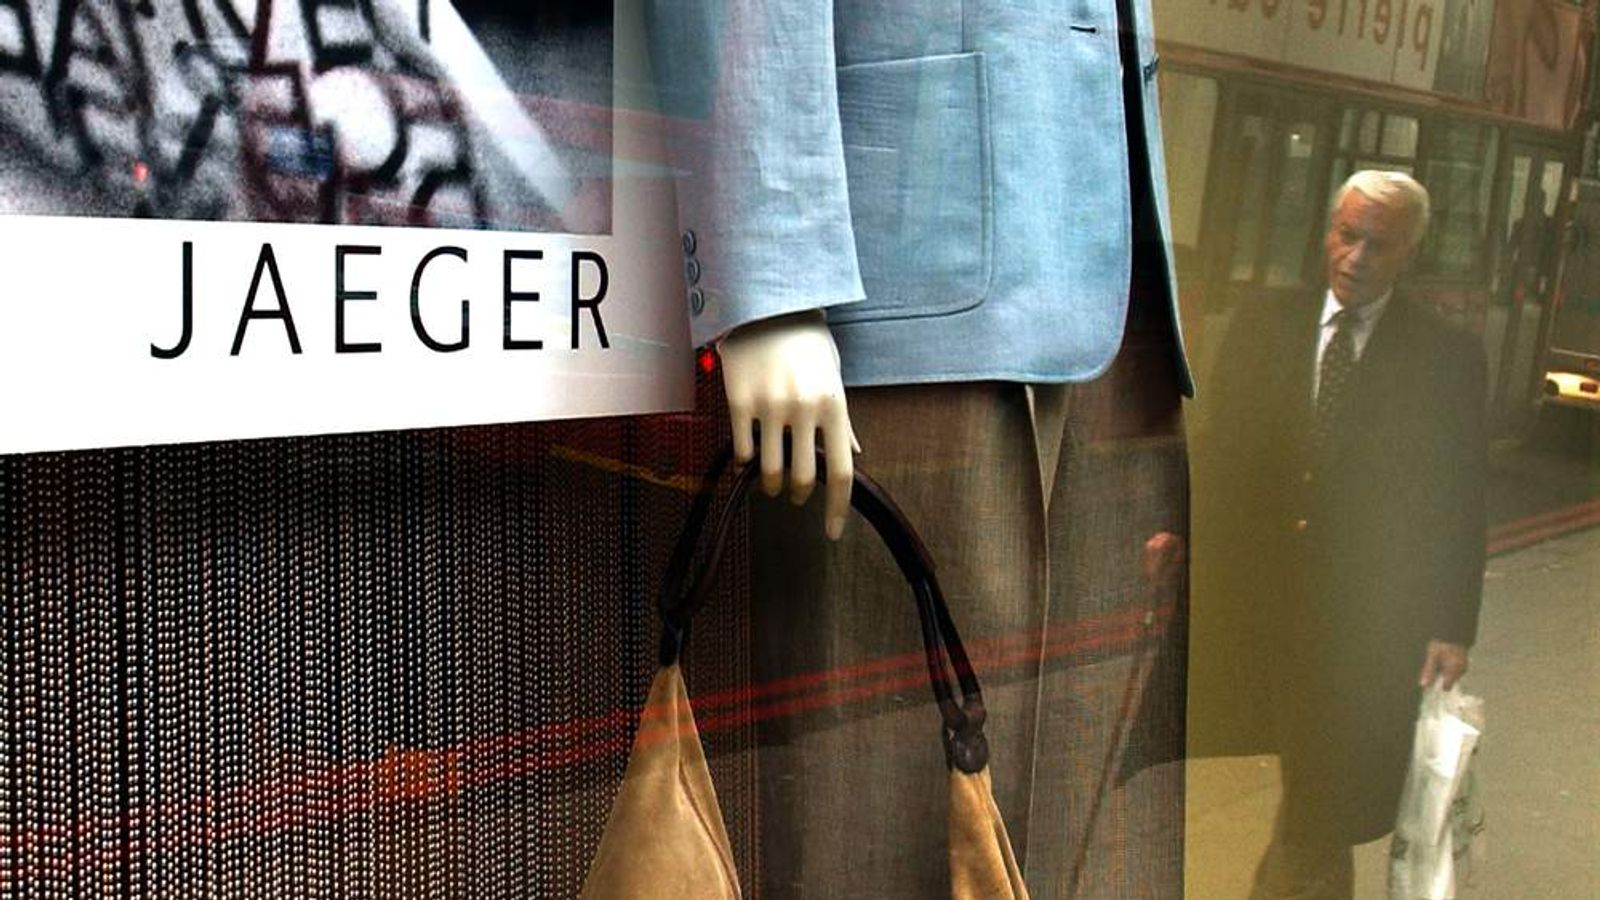 Jaeger collapses putting 680 jobs at risk